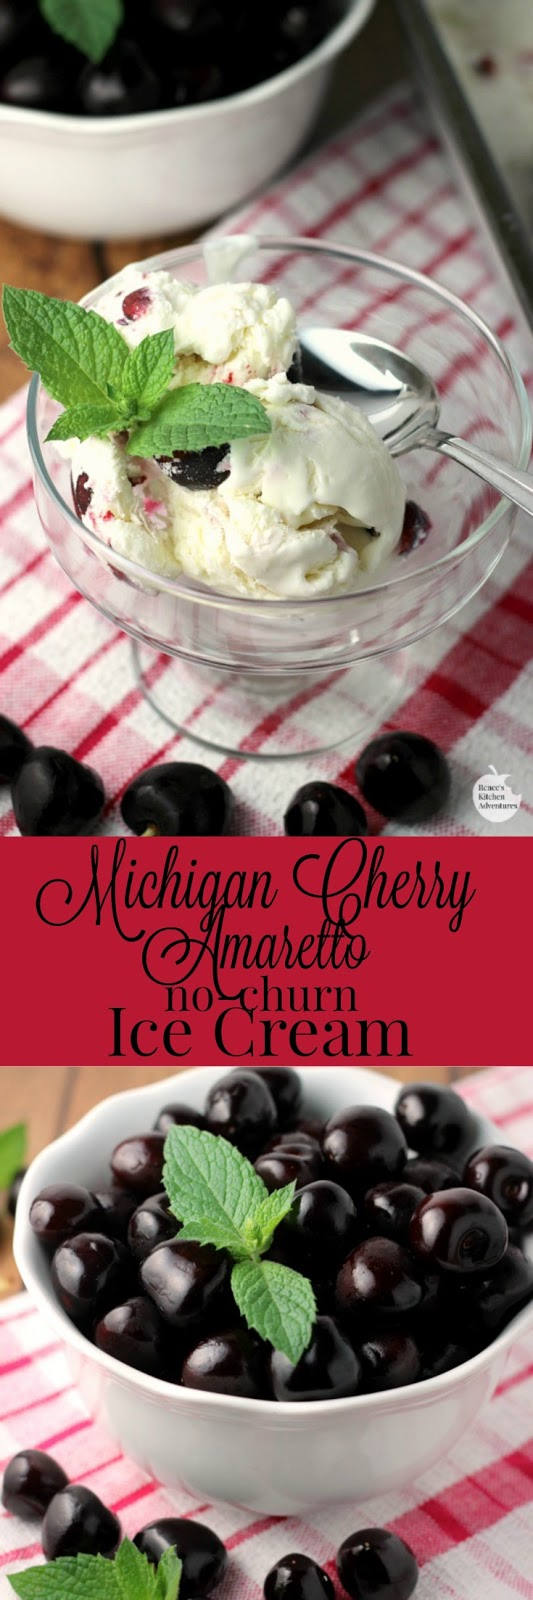 Michigan Cherry Amaretto No-Churn Ice Cream | by Renee's Kitchen Adventures - easy no-churn ice cream recipe for Amaretto ice cream with fresh Michigan cherries. DELISH! #cherry #icecream